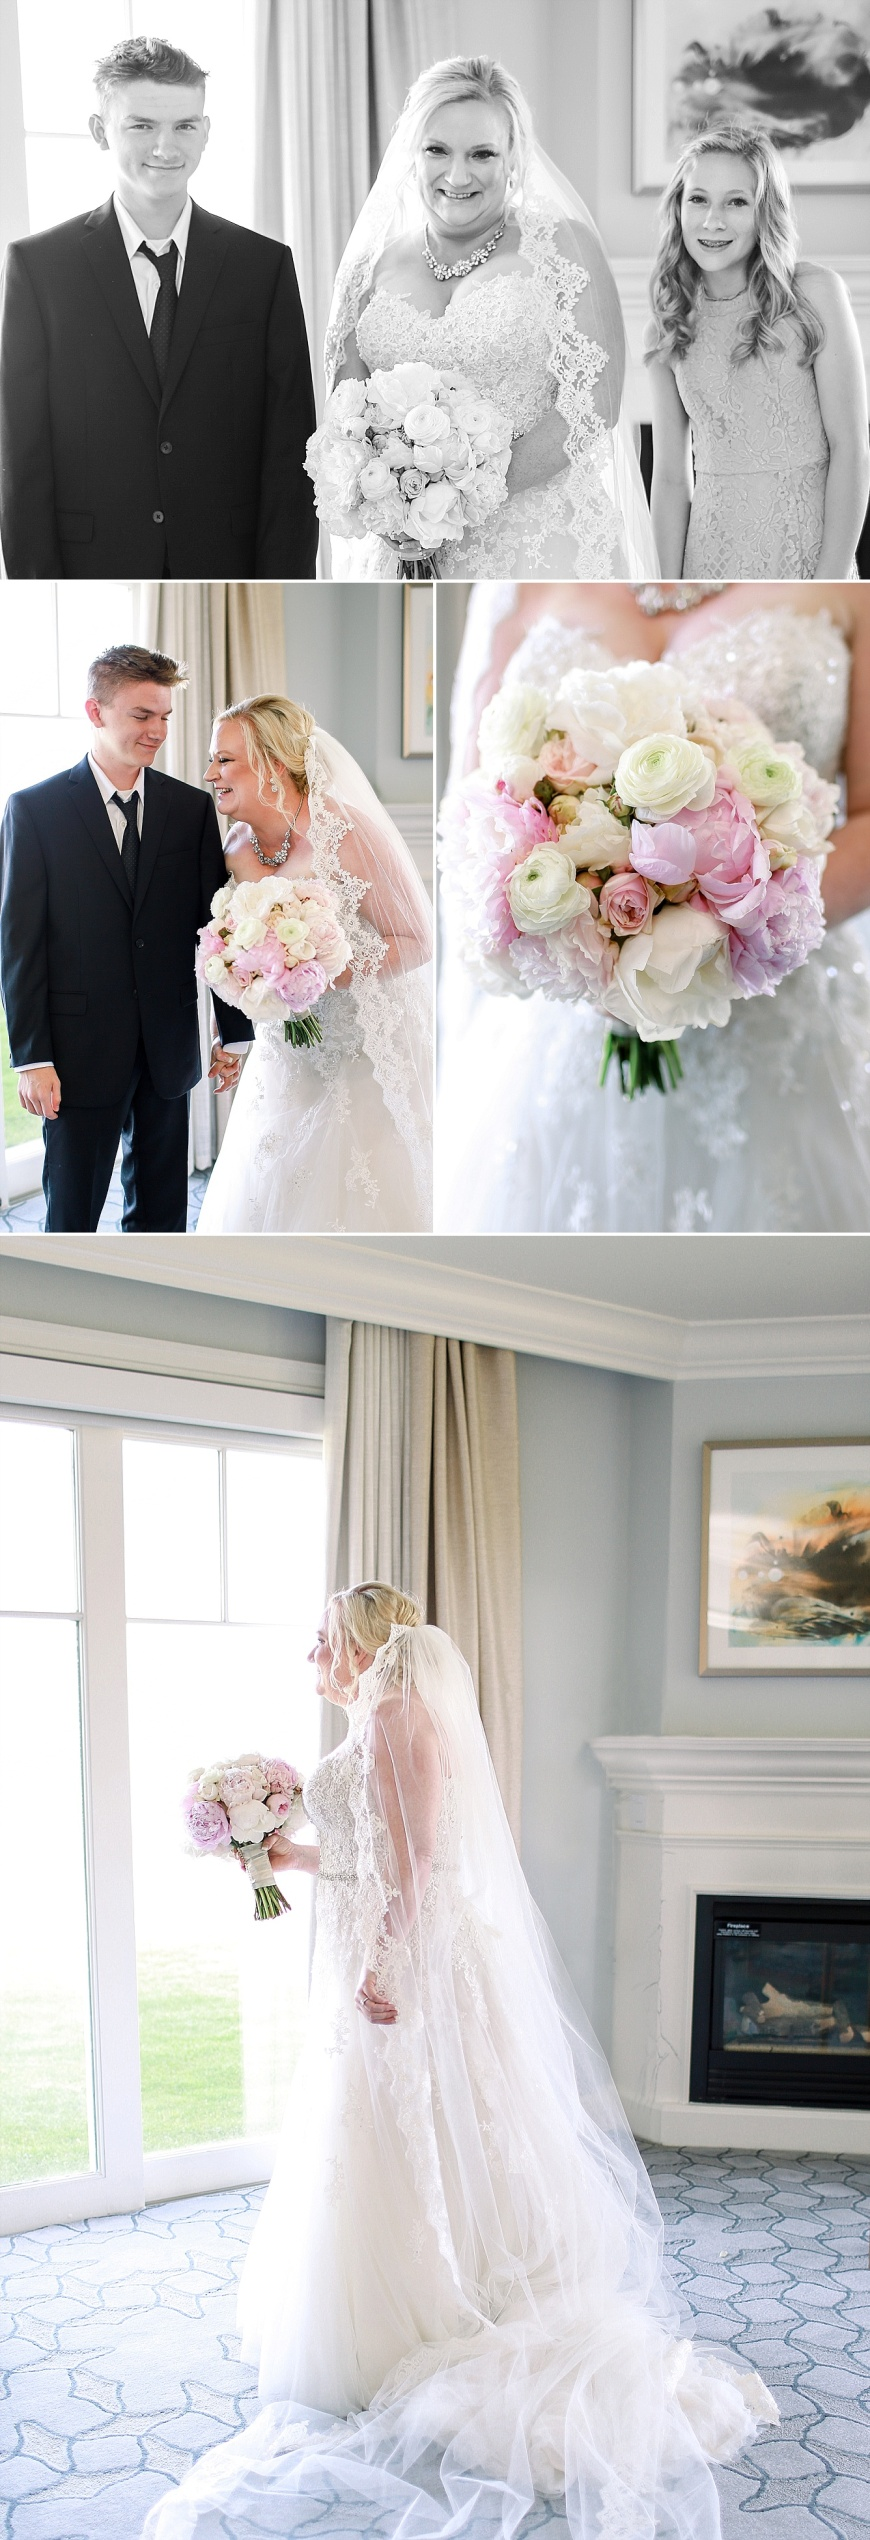 The-Ritz-Carlton-Half-Moon-Bay-Wedding-Photographer_1013.jpg